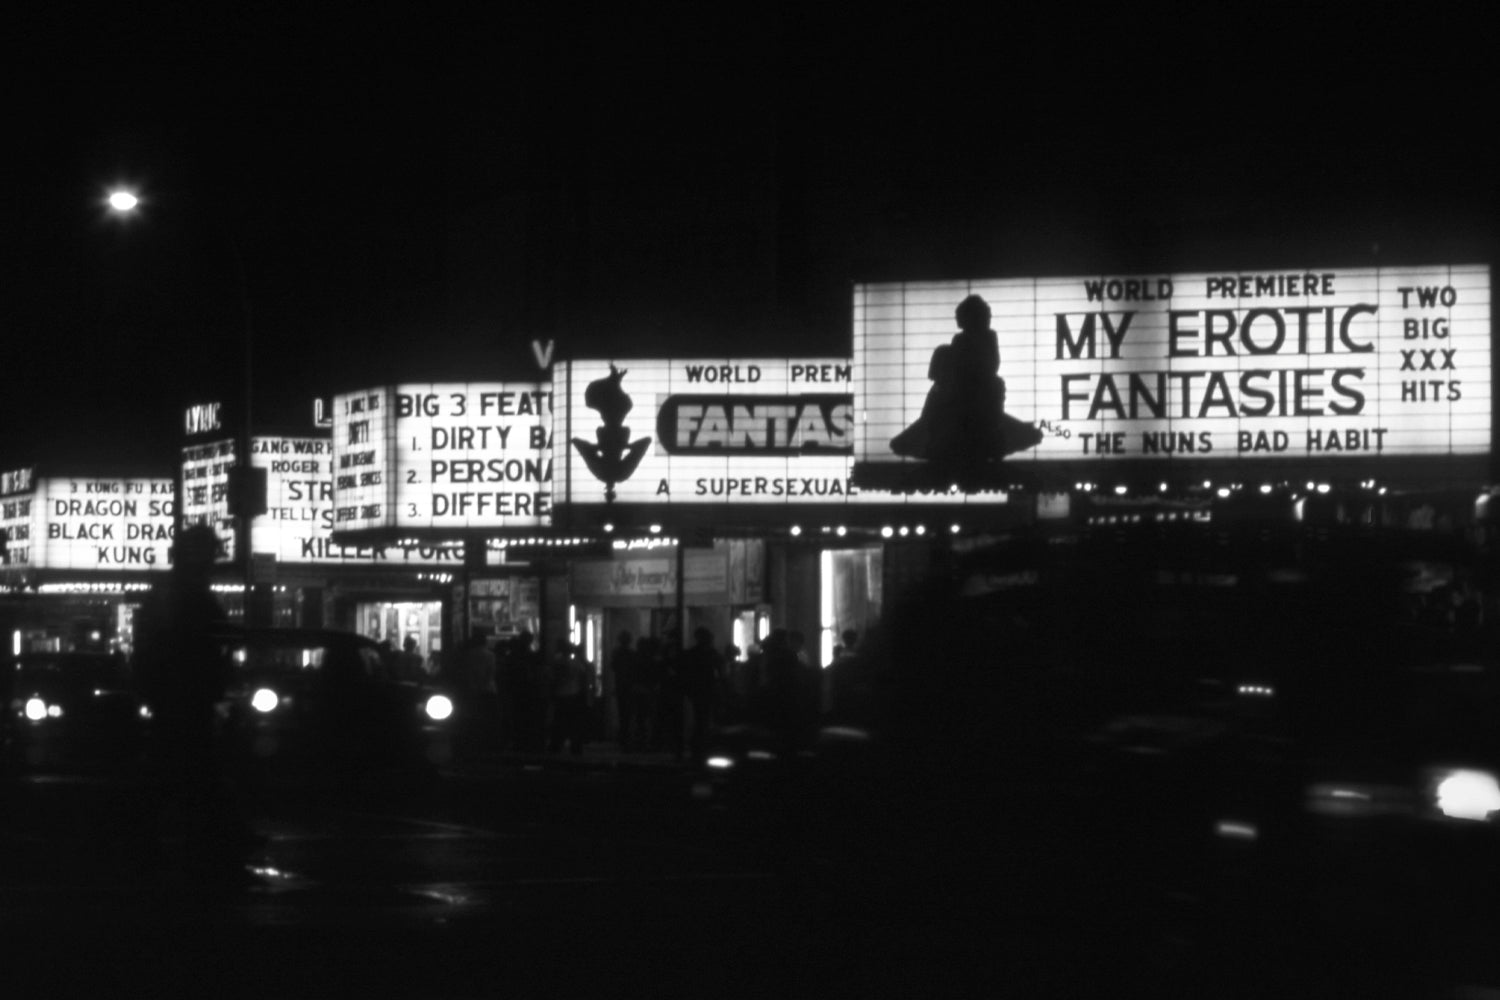 NEW YORK - 1976: A view of the marquees of cinemas on West 42nd Street including the RialtoII, the Rialto, the Victory Theatre, the Lyric Theatre and the Times Square Theater in 1976 in New York City, New York. (Photo by Donaldson Collection/Michael Ochs Archives/Getty Images)